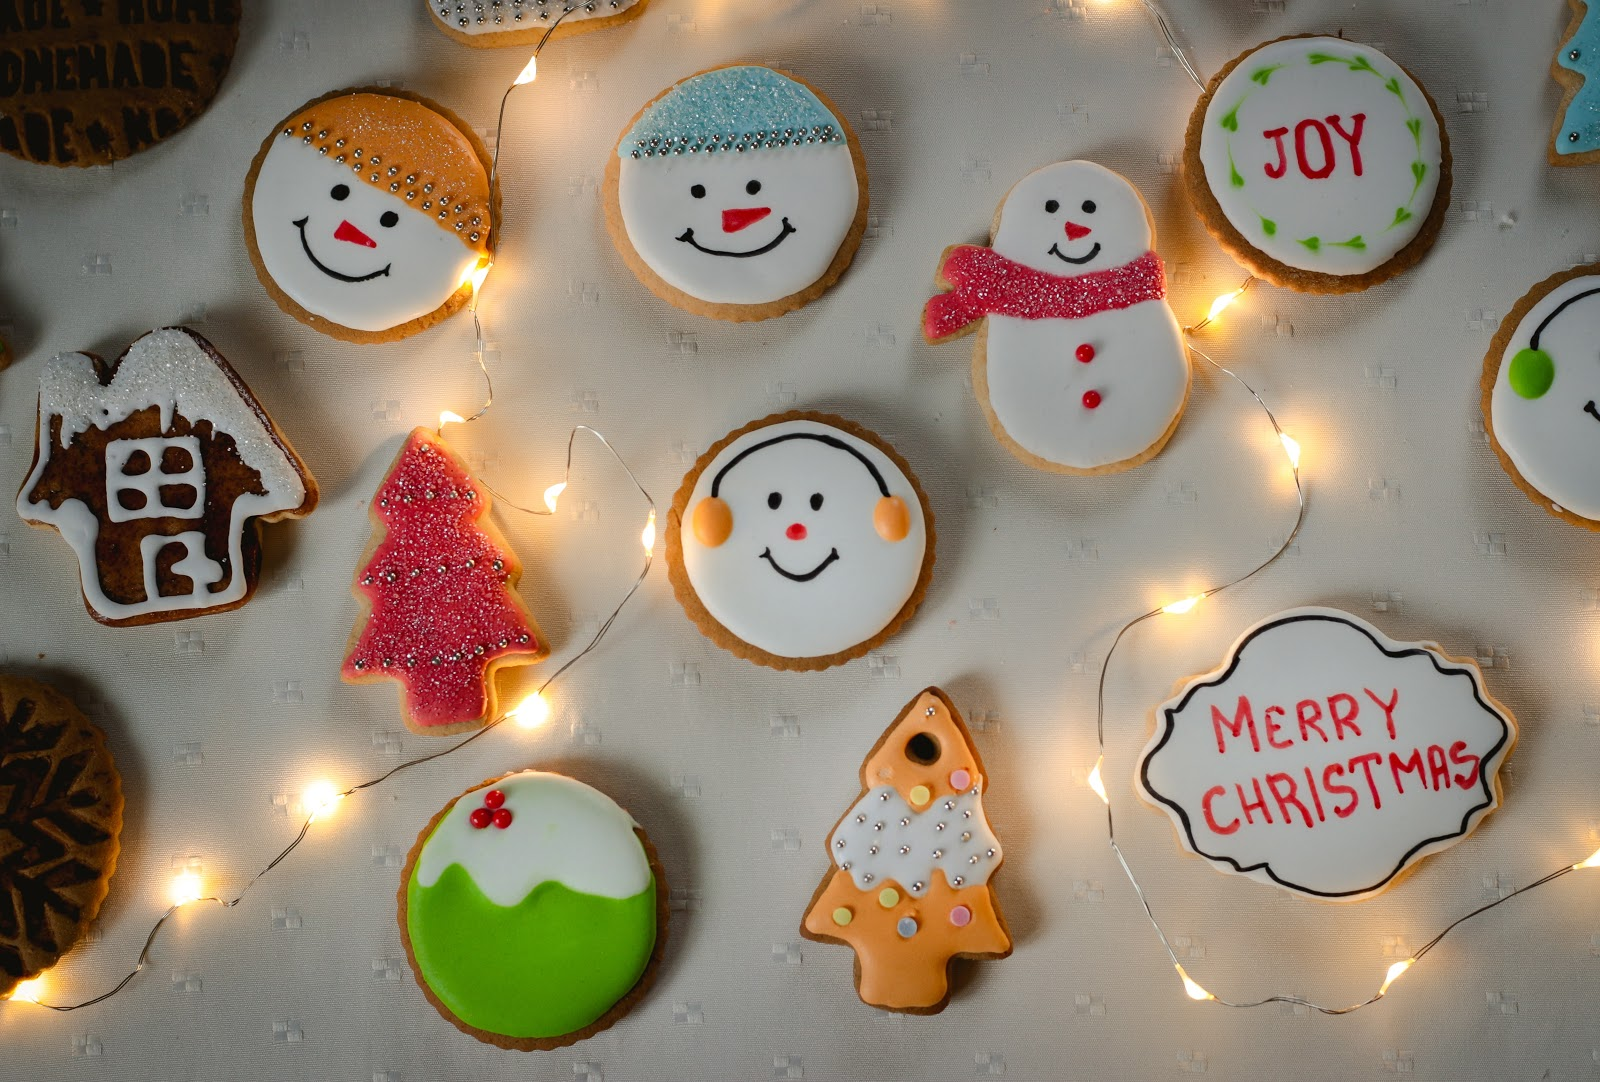 an assortment of decorated Christmas cookies